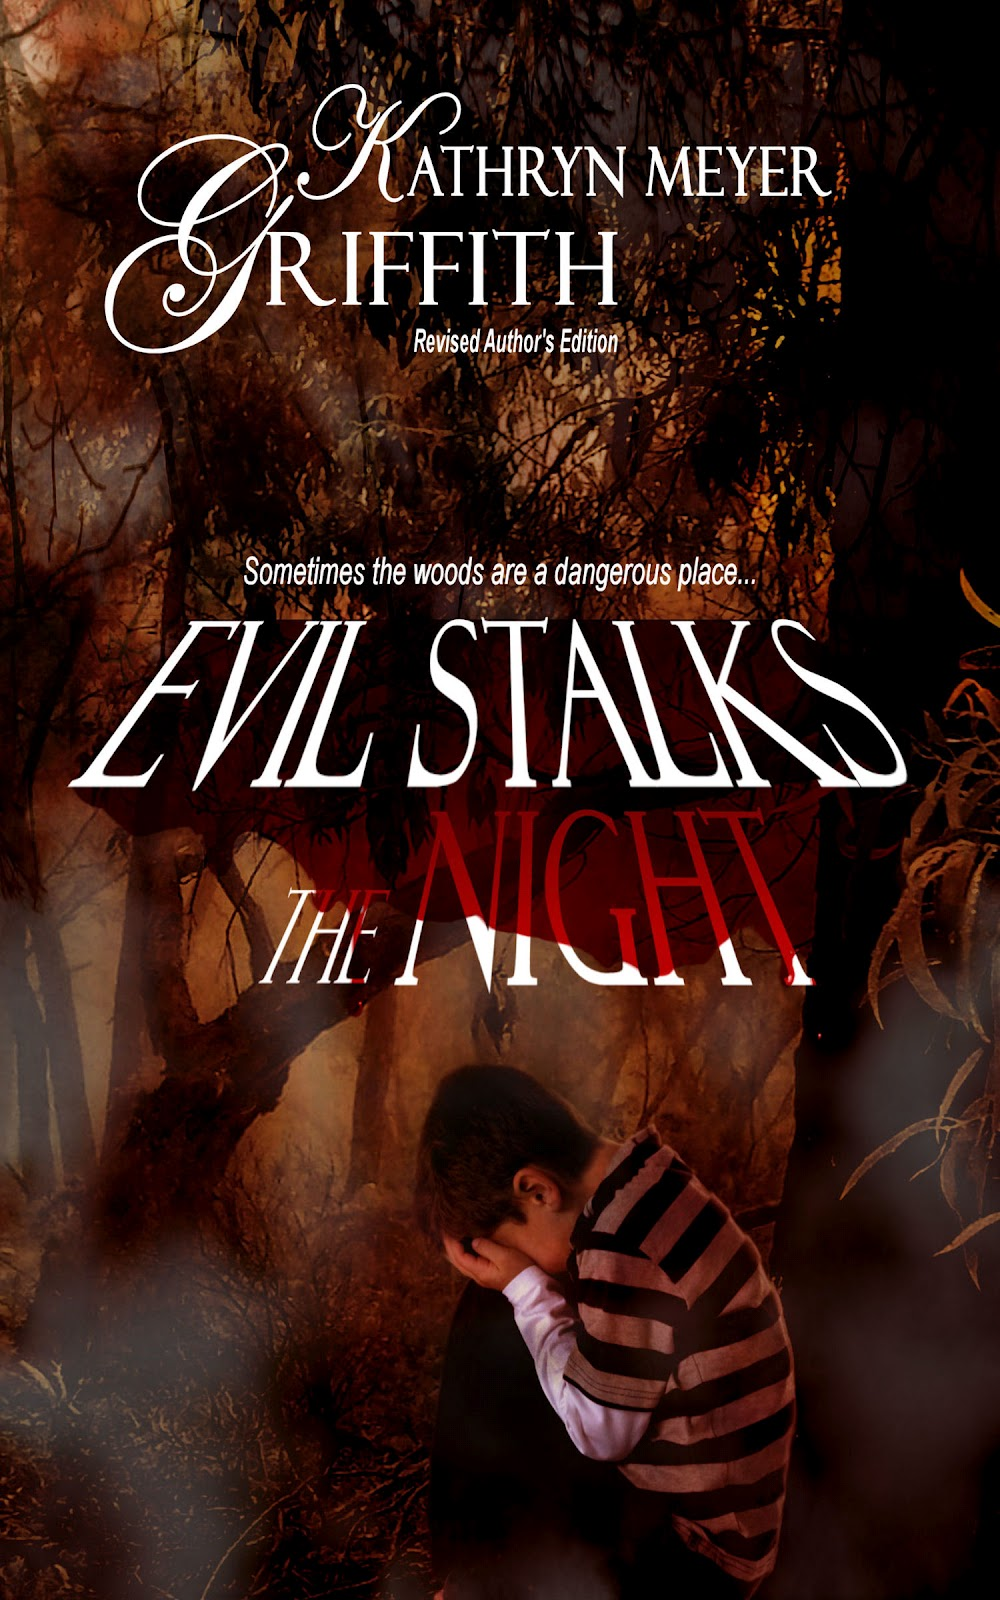 Jenna elizabeth johnson june 2012 evil stalks the night revised authors edition is special to me for many reasons it was my first published novel in 1984 and as it comes out again on june fandeluxe Images